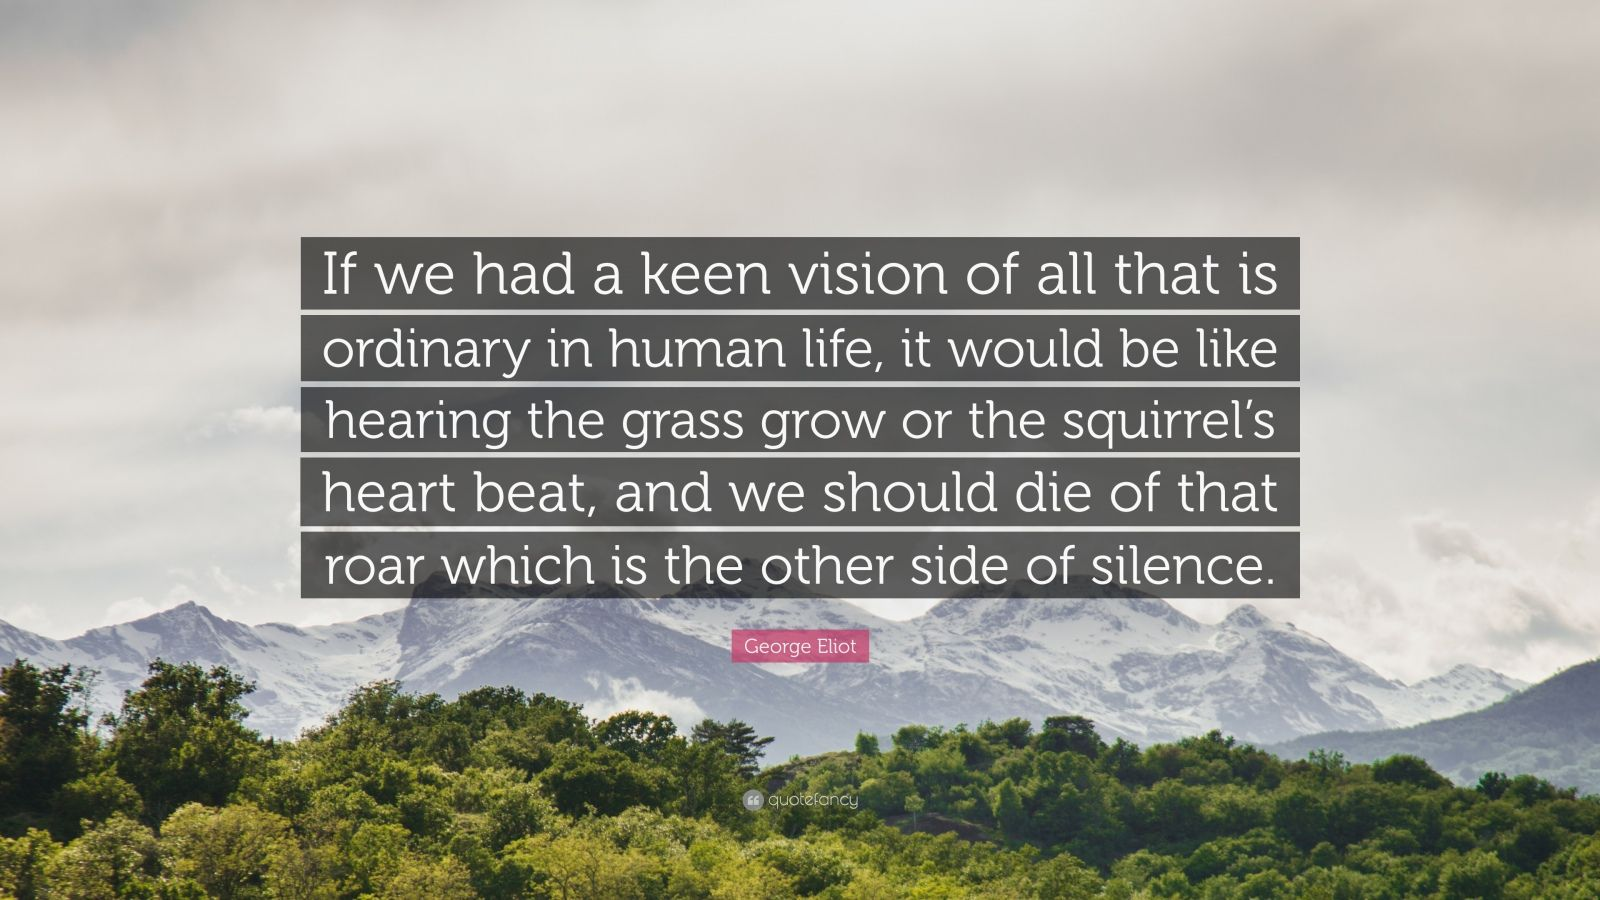 """George Eliot Quote: """"If we had a keen vision of all that is ordinary in human life, it would be like hearing the grass grow or the squirrel's heart beat, and we should die of that roar which is the other side of silence."""""""